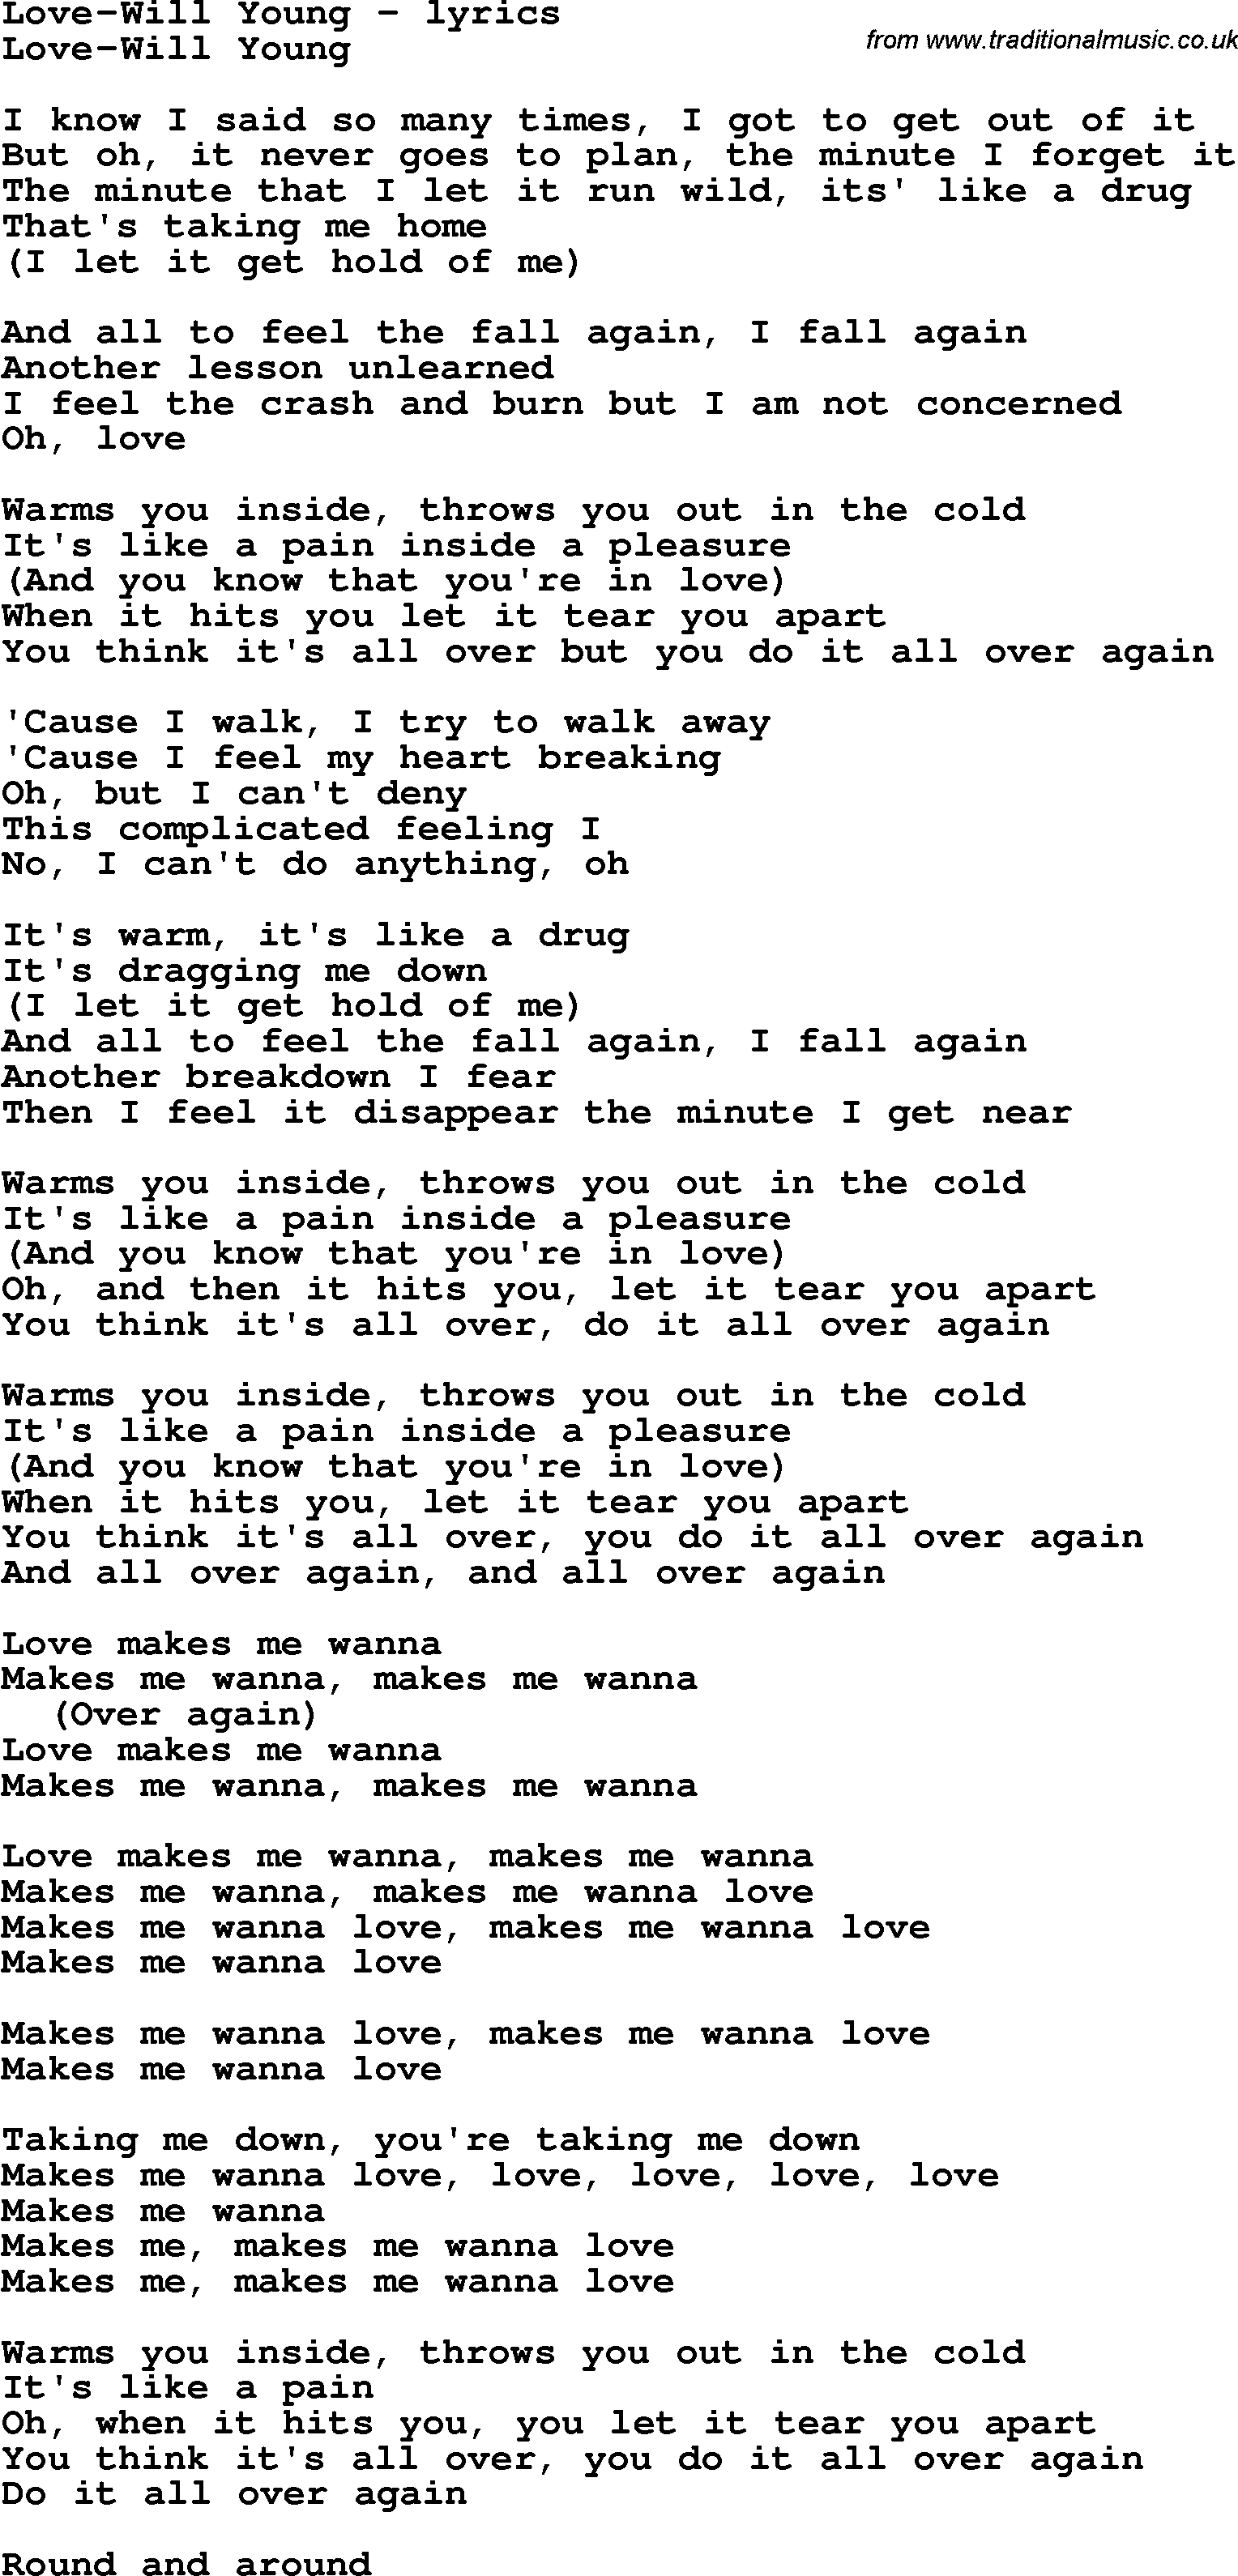 a song for young love lyrics